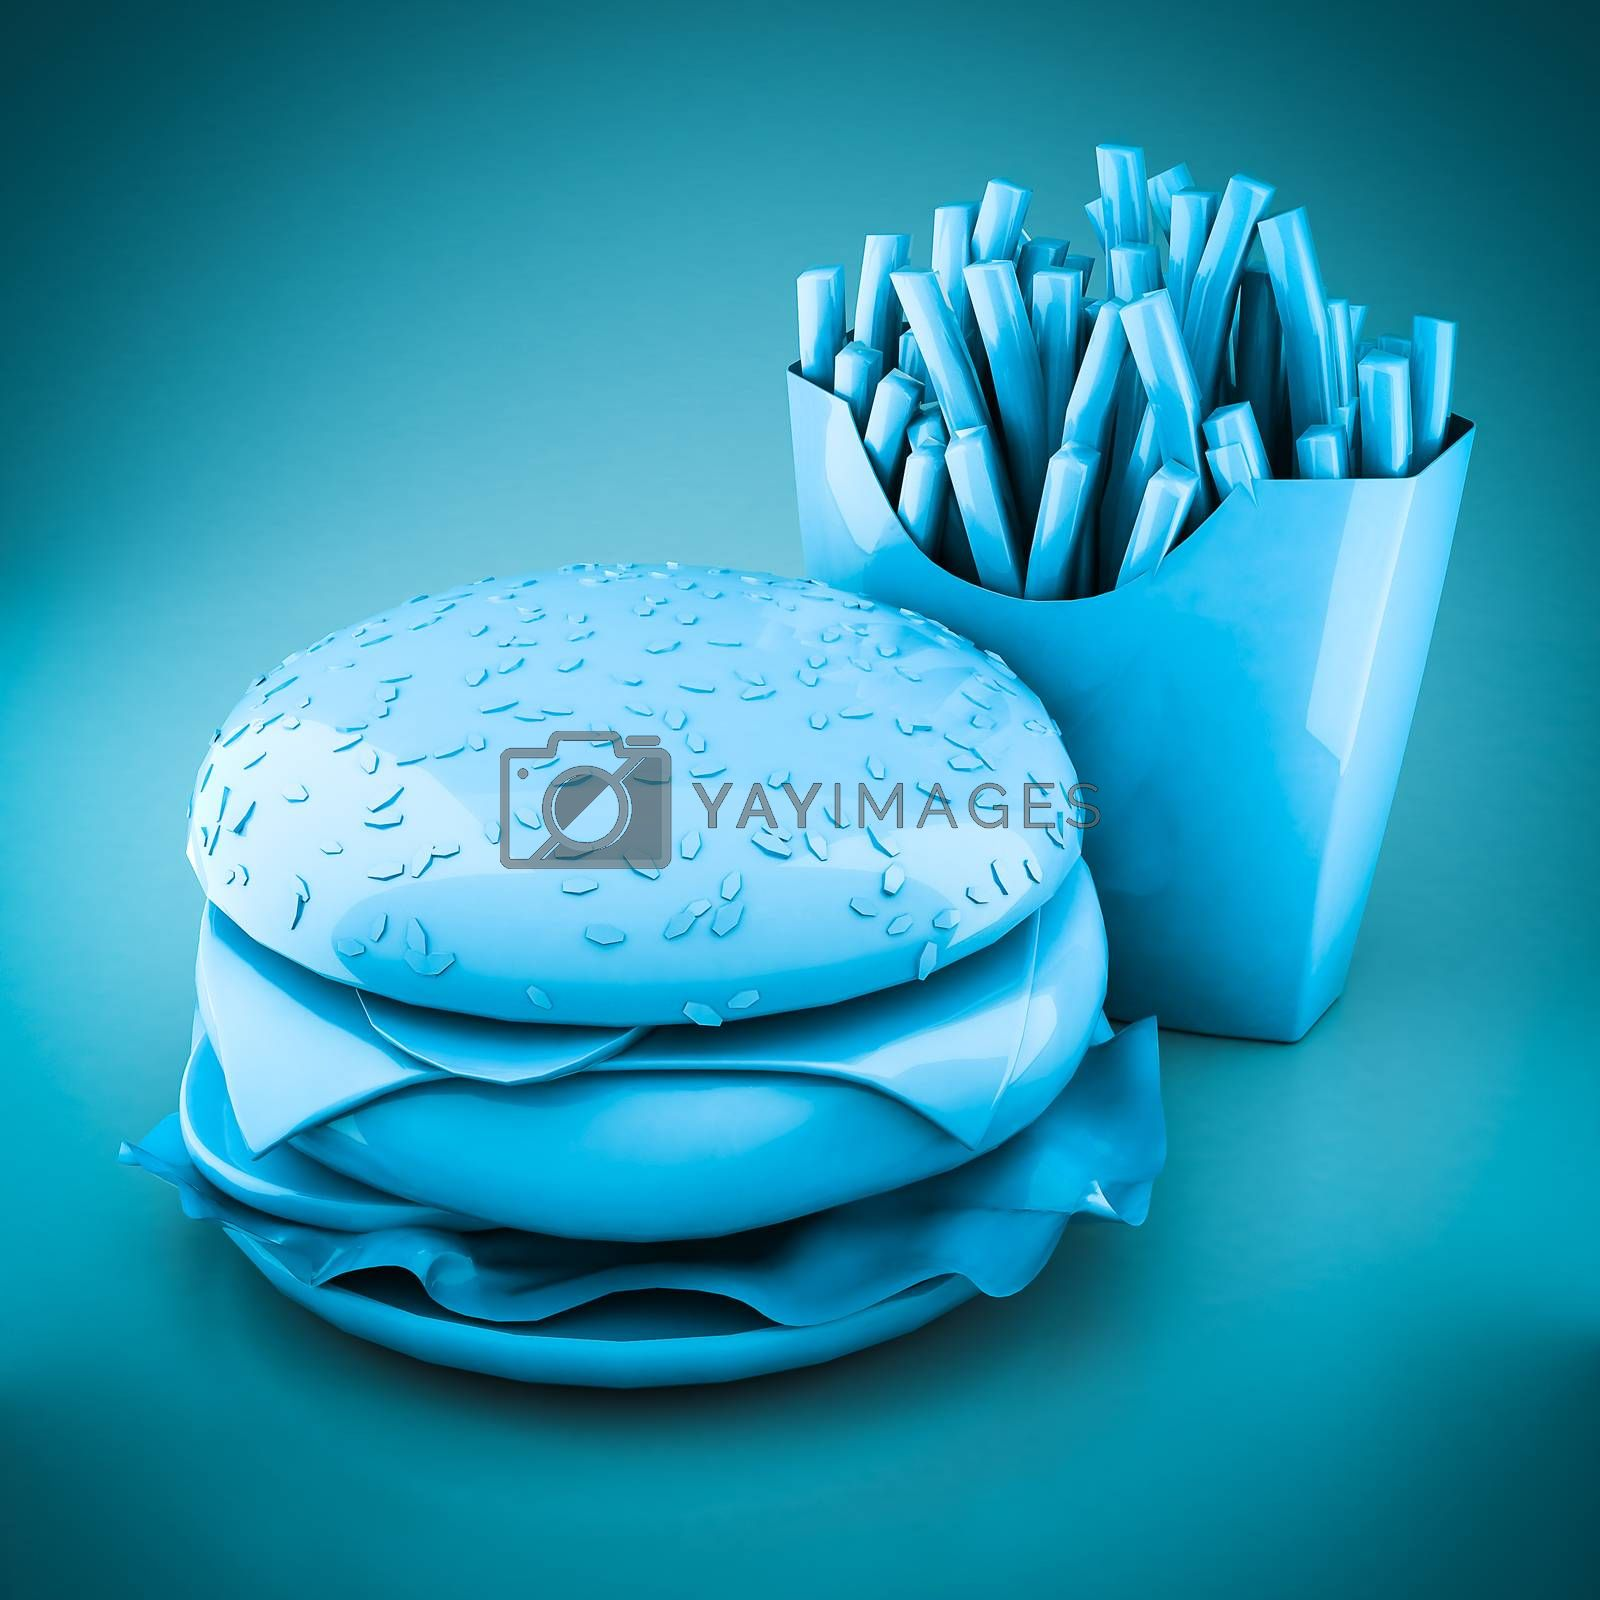 Hamburger and fries on a blue background